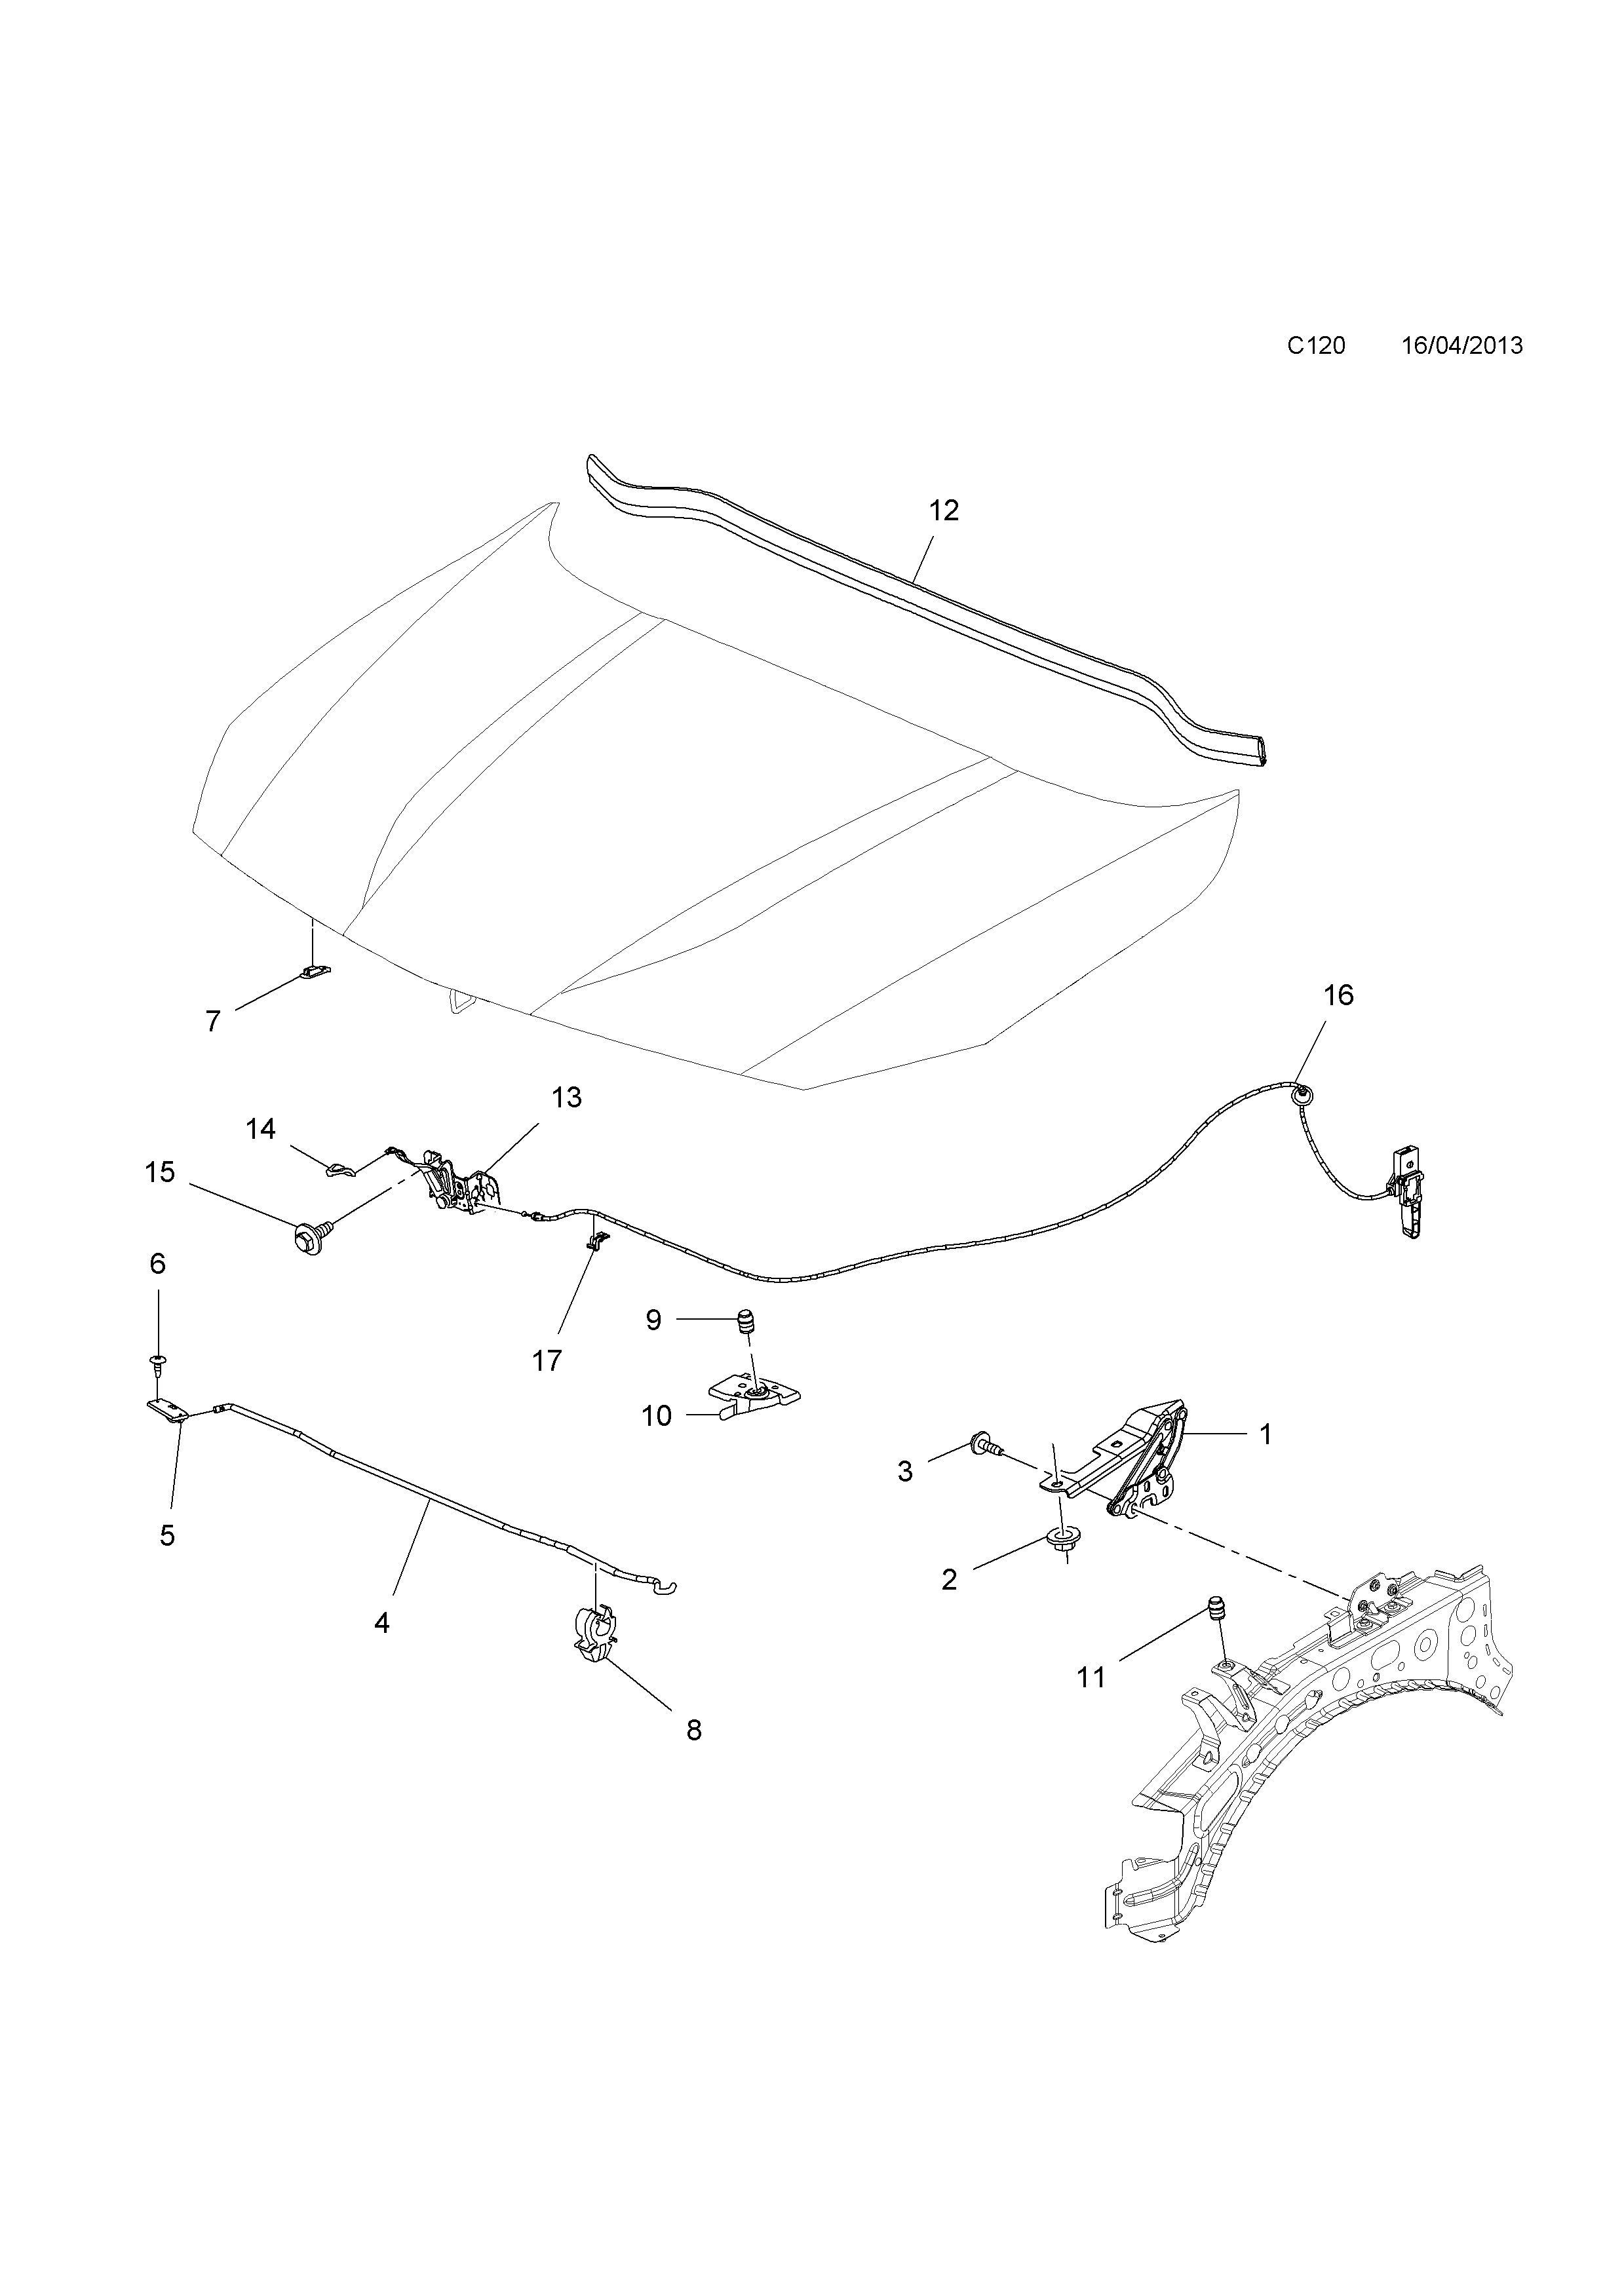 Opel cascada 2013 c body interior fittings 9 bonnet list of parts sciox Image collections